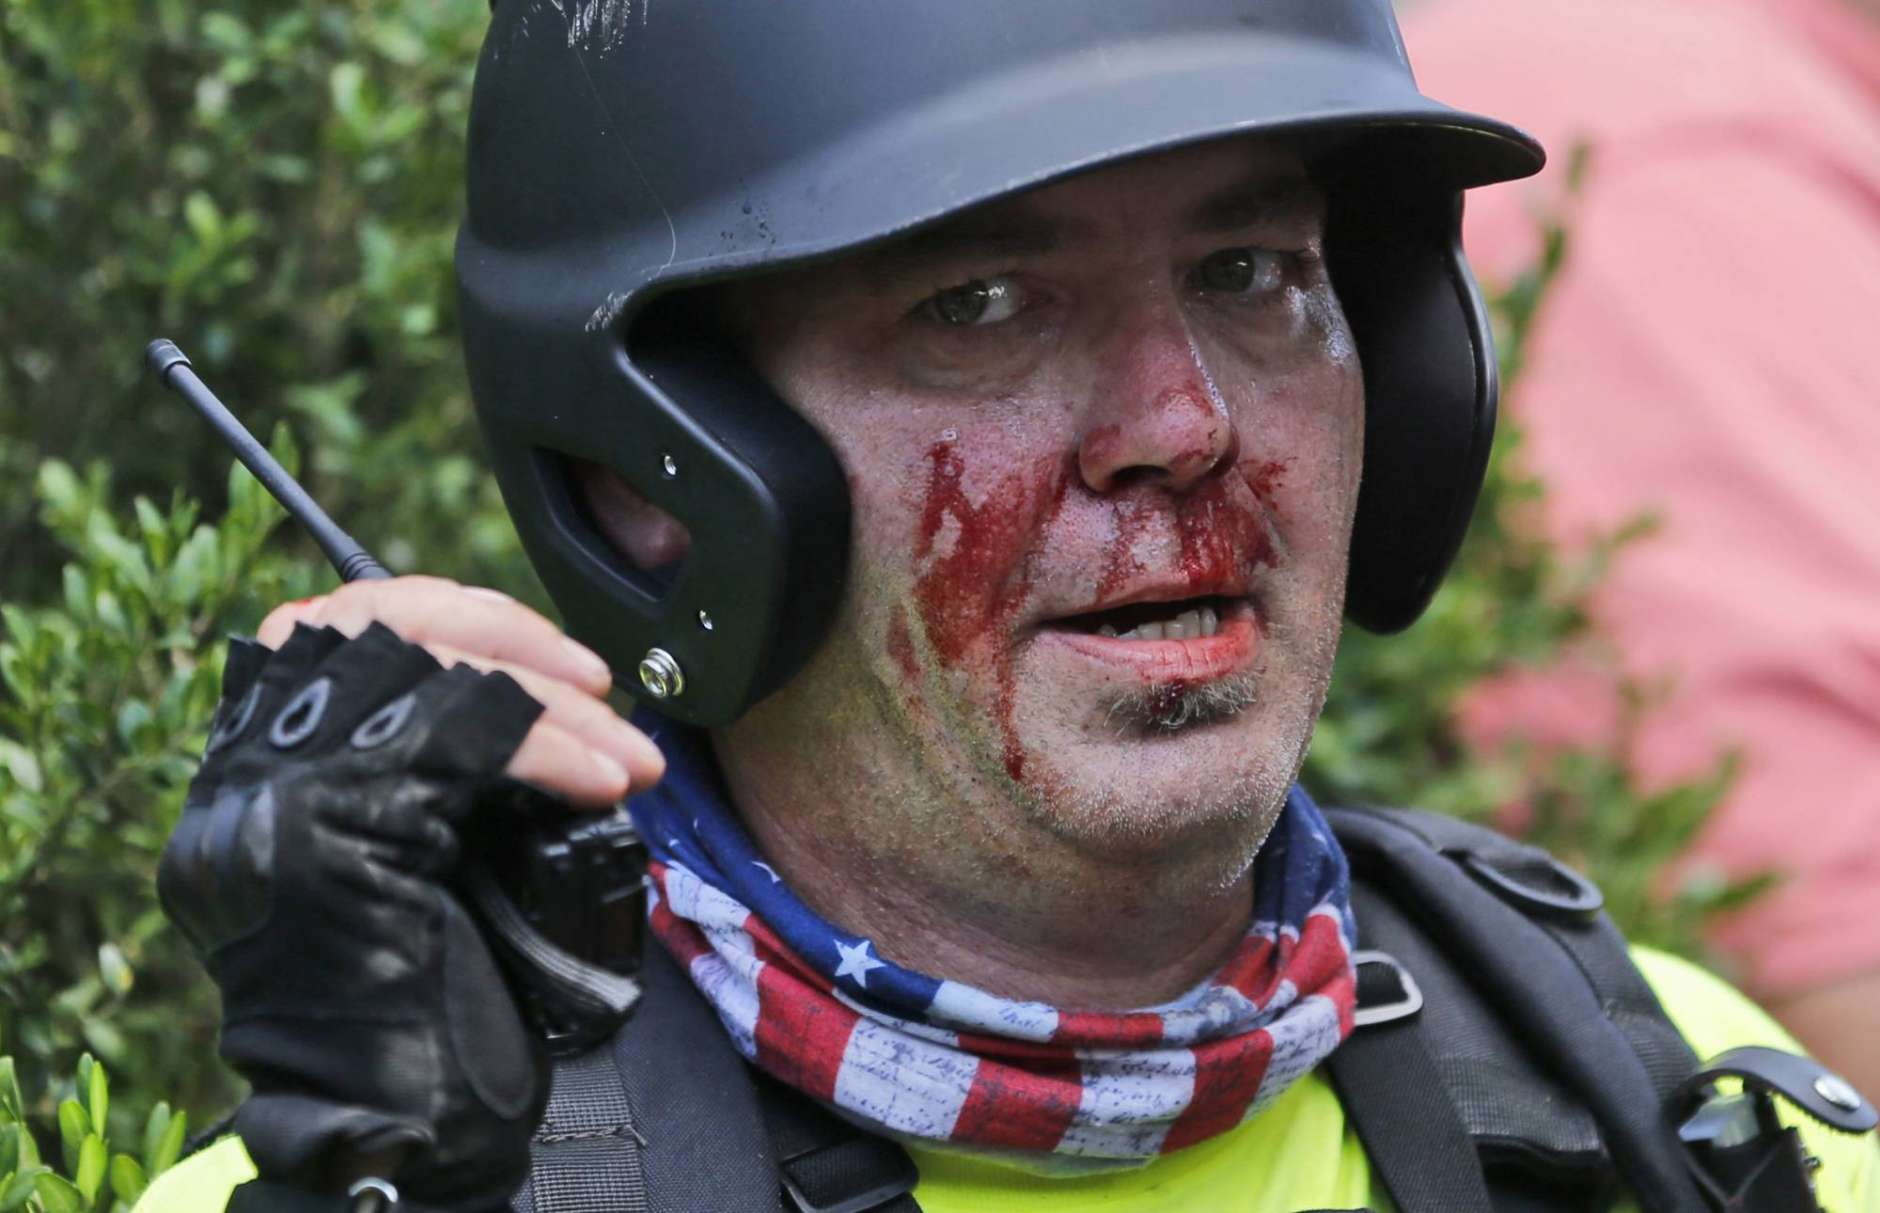 A white nationalist demonstrator, bloodied after a clash with a counter demonstrator,  talks on the radio receiver at the entrance to Lee Park in Charlottesville, Va., Saturday, Aug. 12, 2017. Gov. Terry McAuliffe declared a state of emergency and police dressed in riot gear ordered people to disperse after chaotic violent clashes between white nationalists and counter protestors. (AP Photo/Steve Helber)